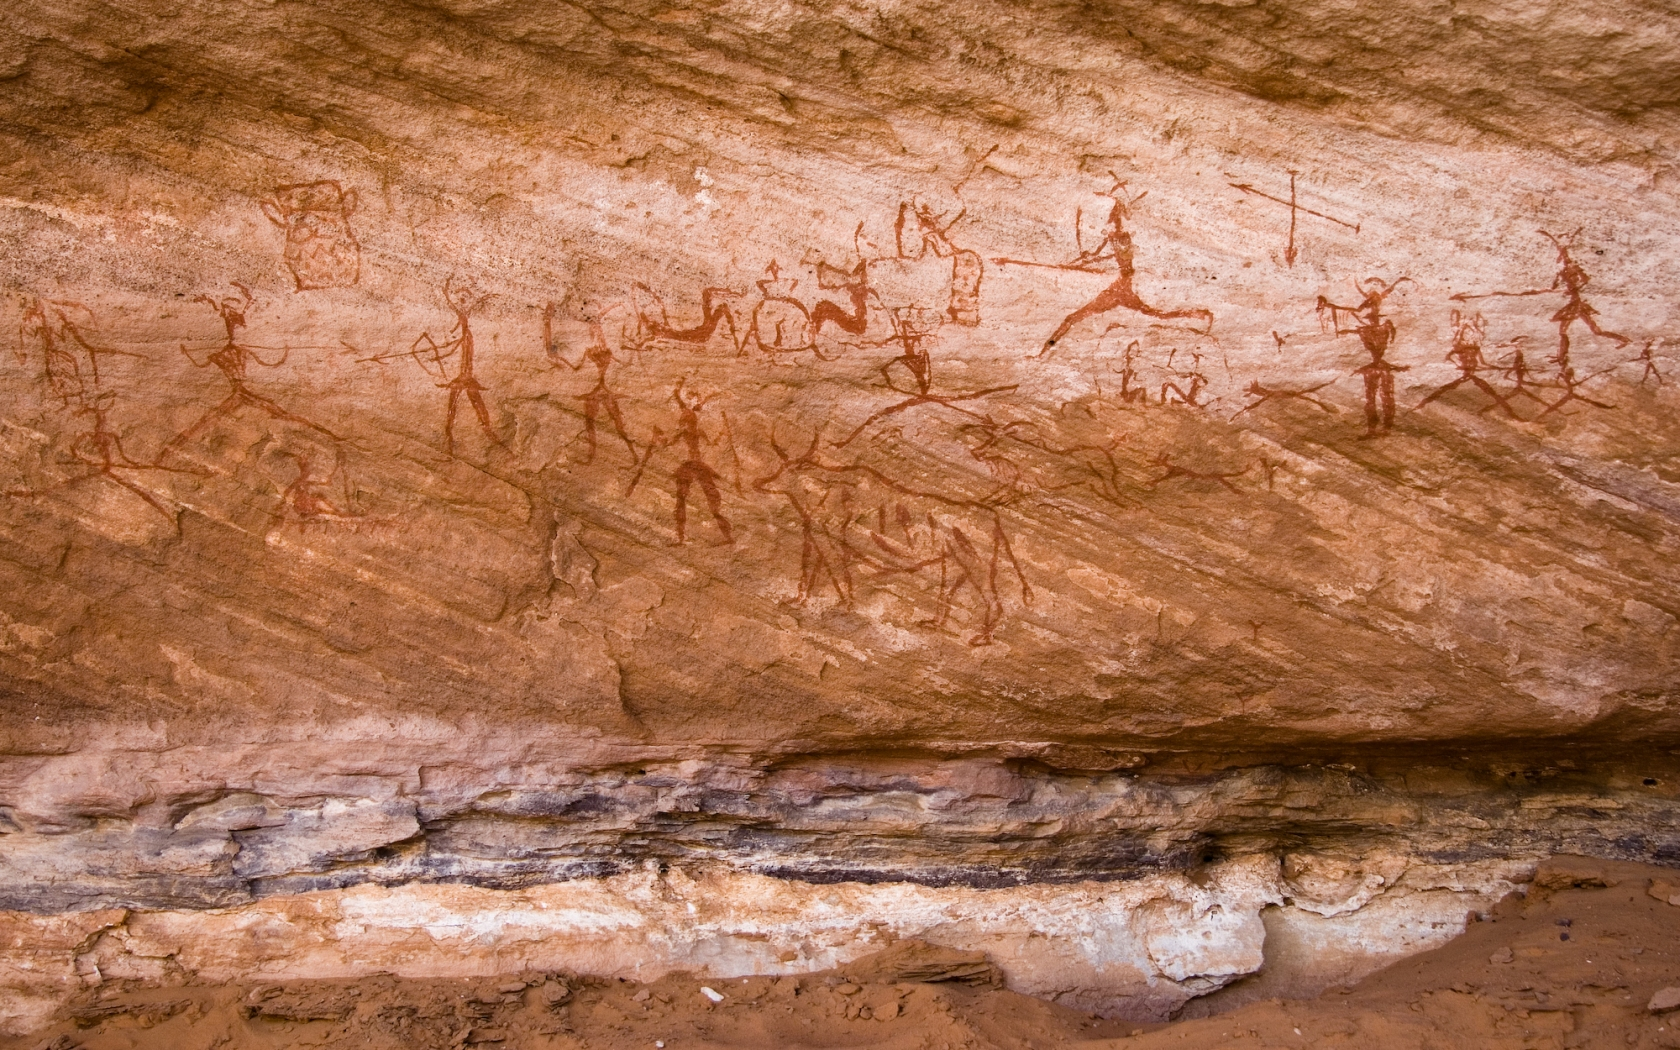 Rock art sites of Tadrart Acacus Libya